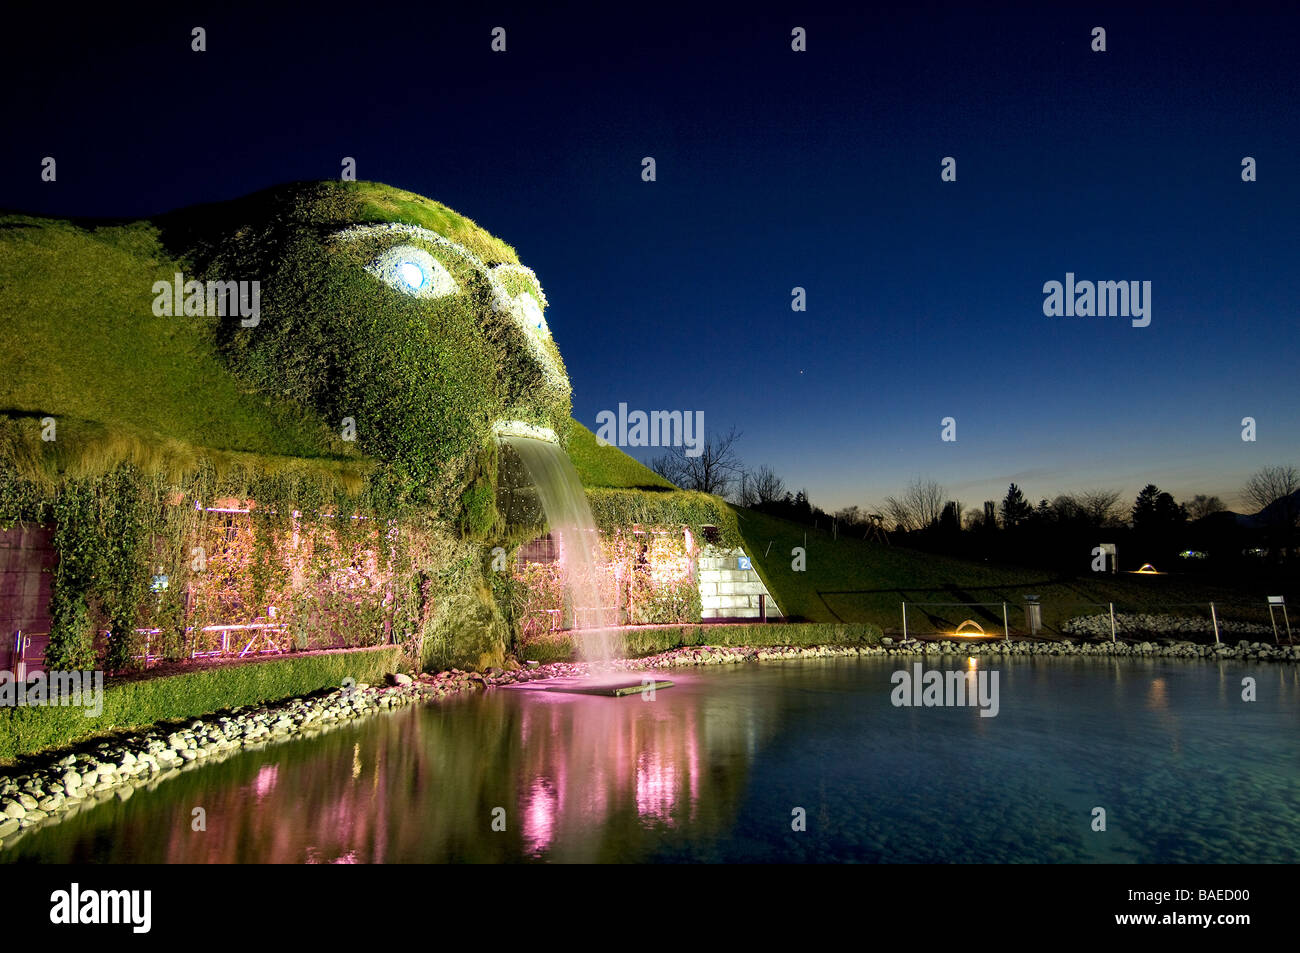 f37cad66e Austria, Tyrol, Wattens, the museum Swarovski, Crystal World, the entry